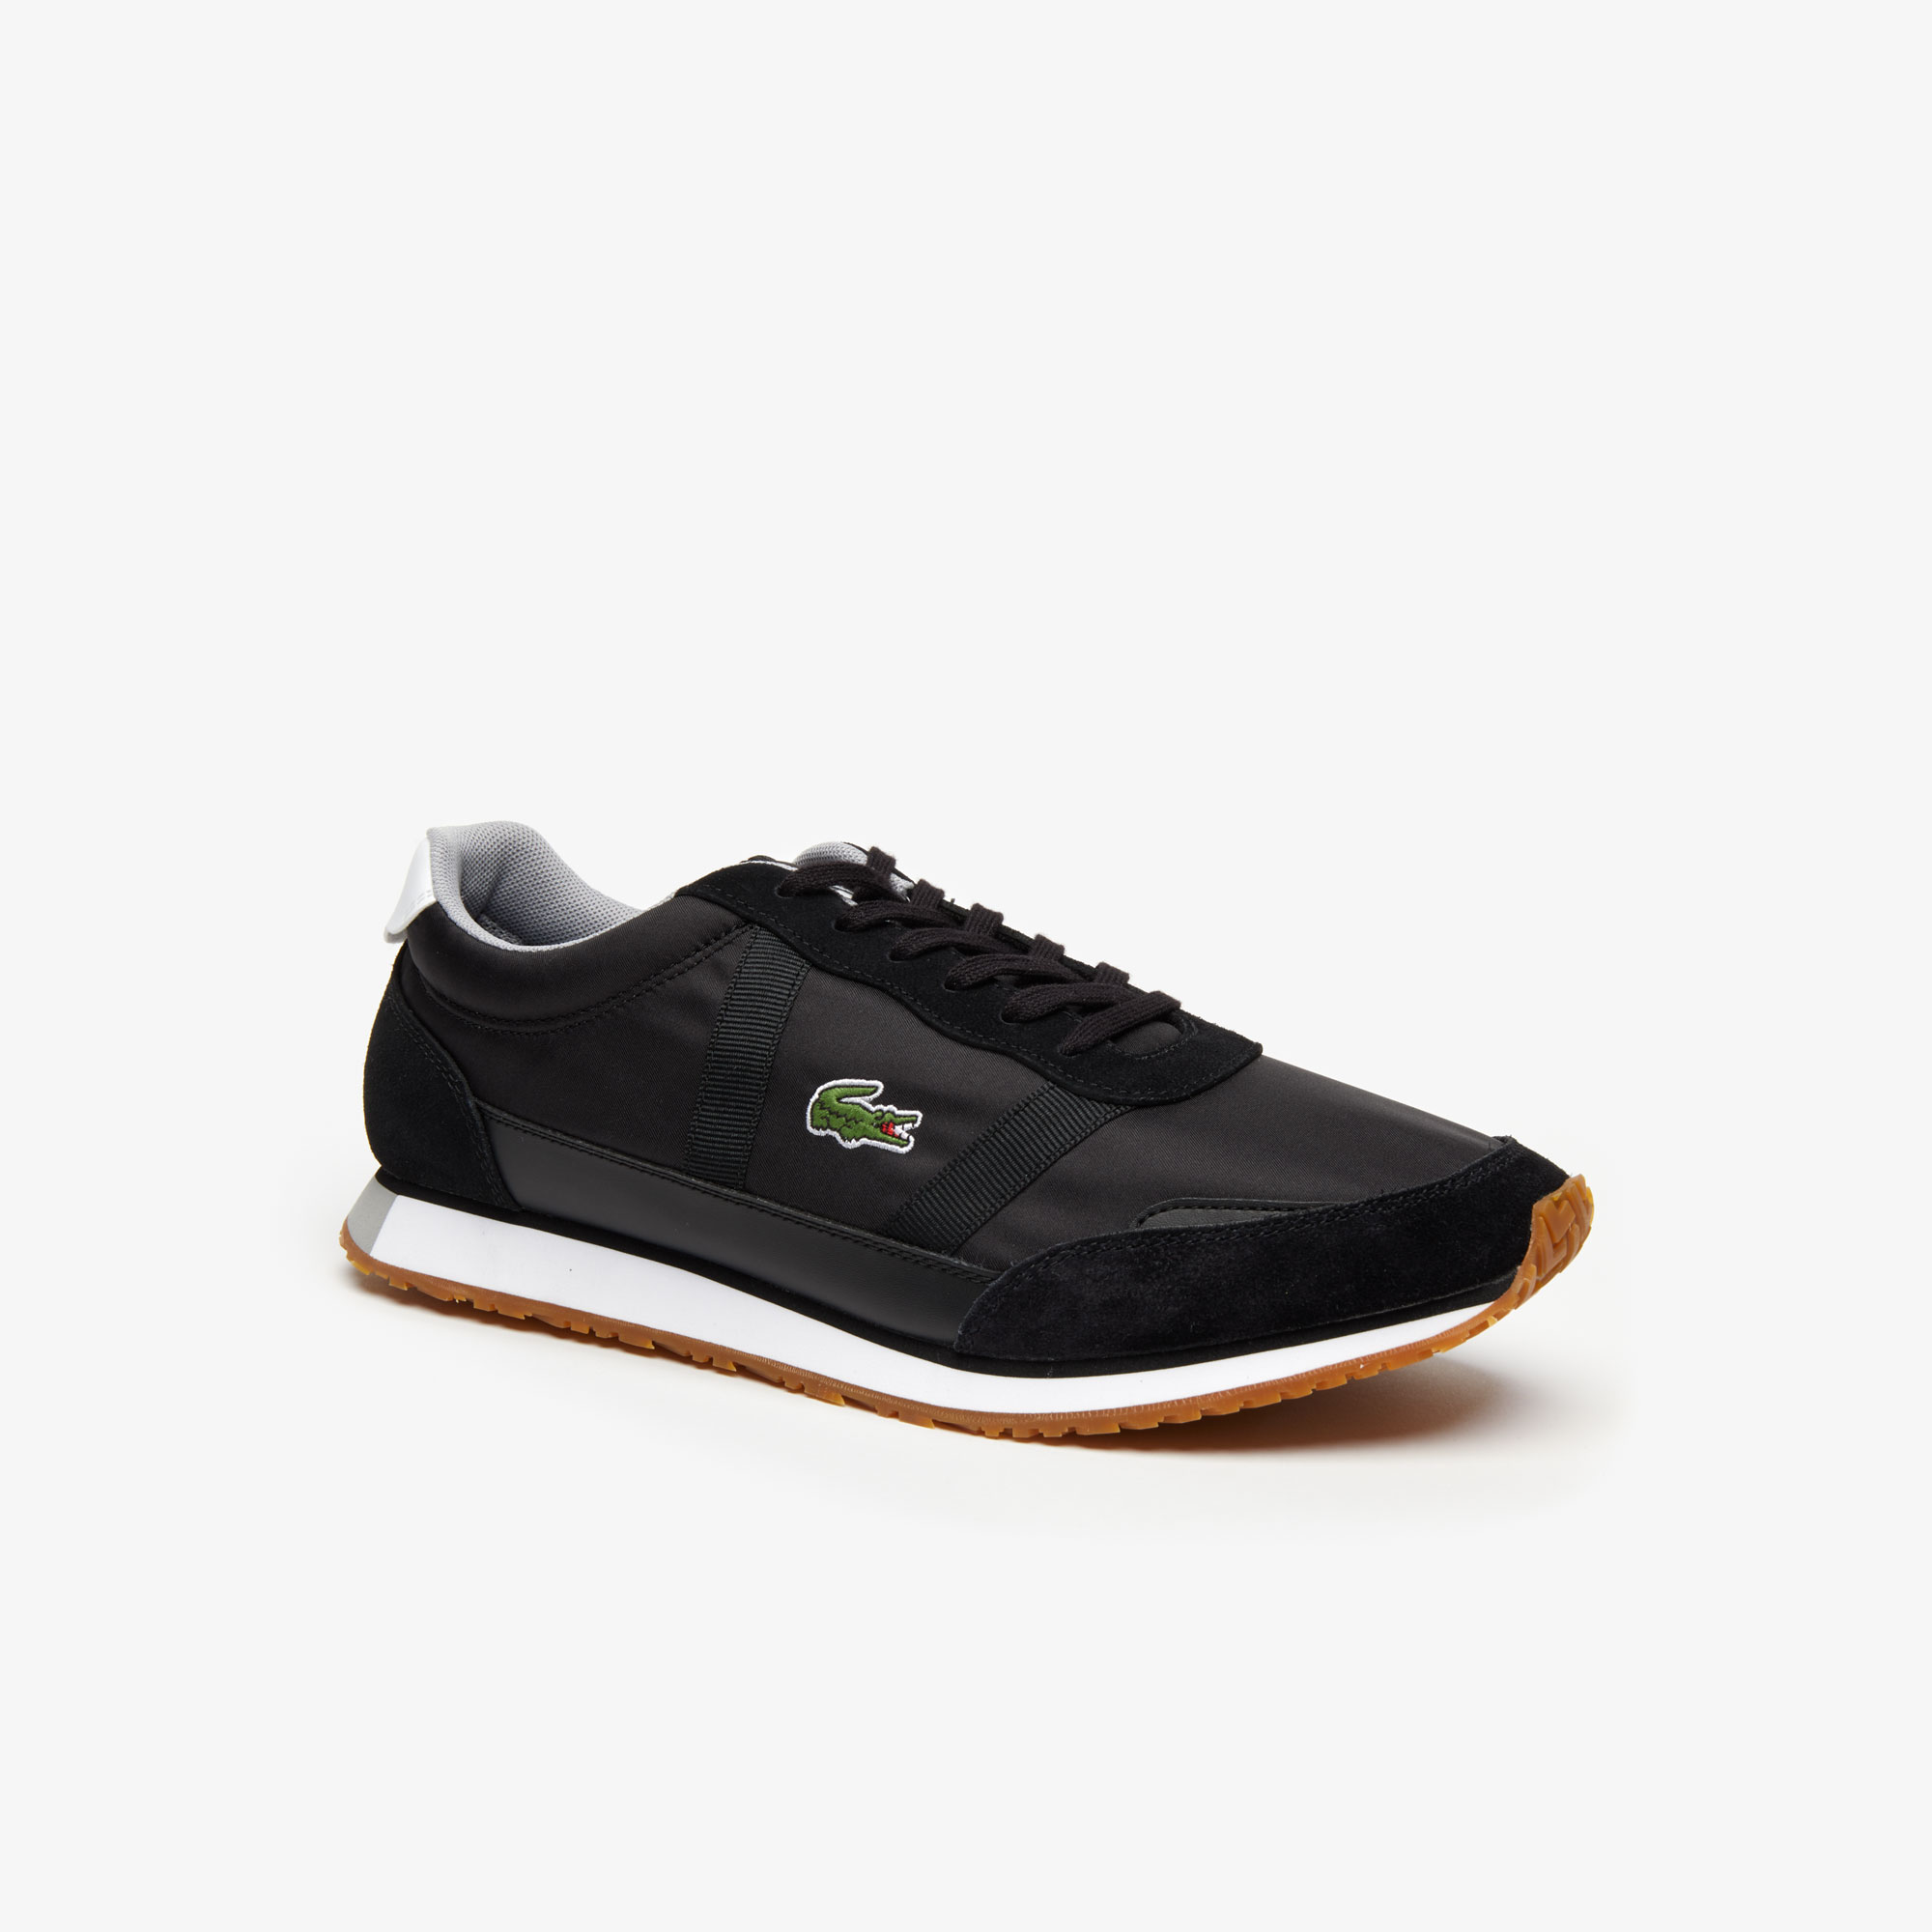 a6bcf8c33cbcbc Chaussures homme | Collection Homme | LACOSTE